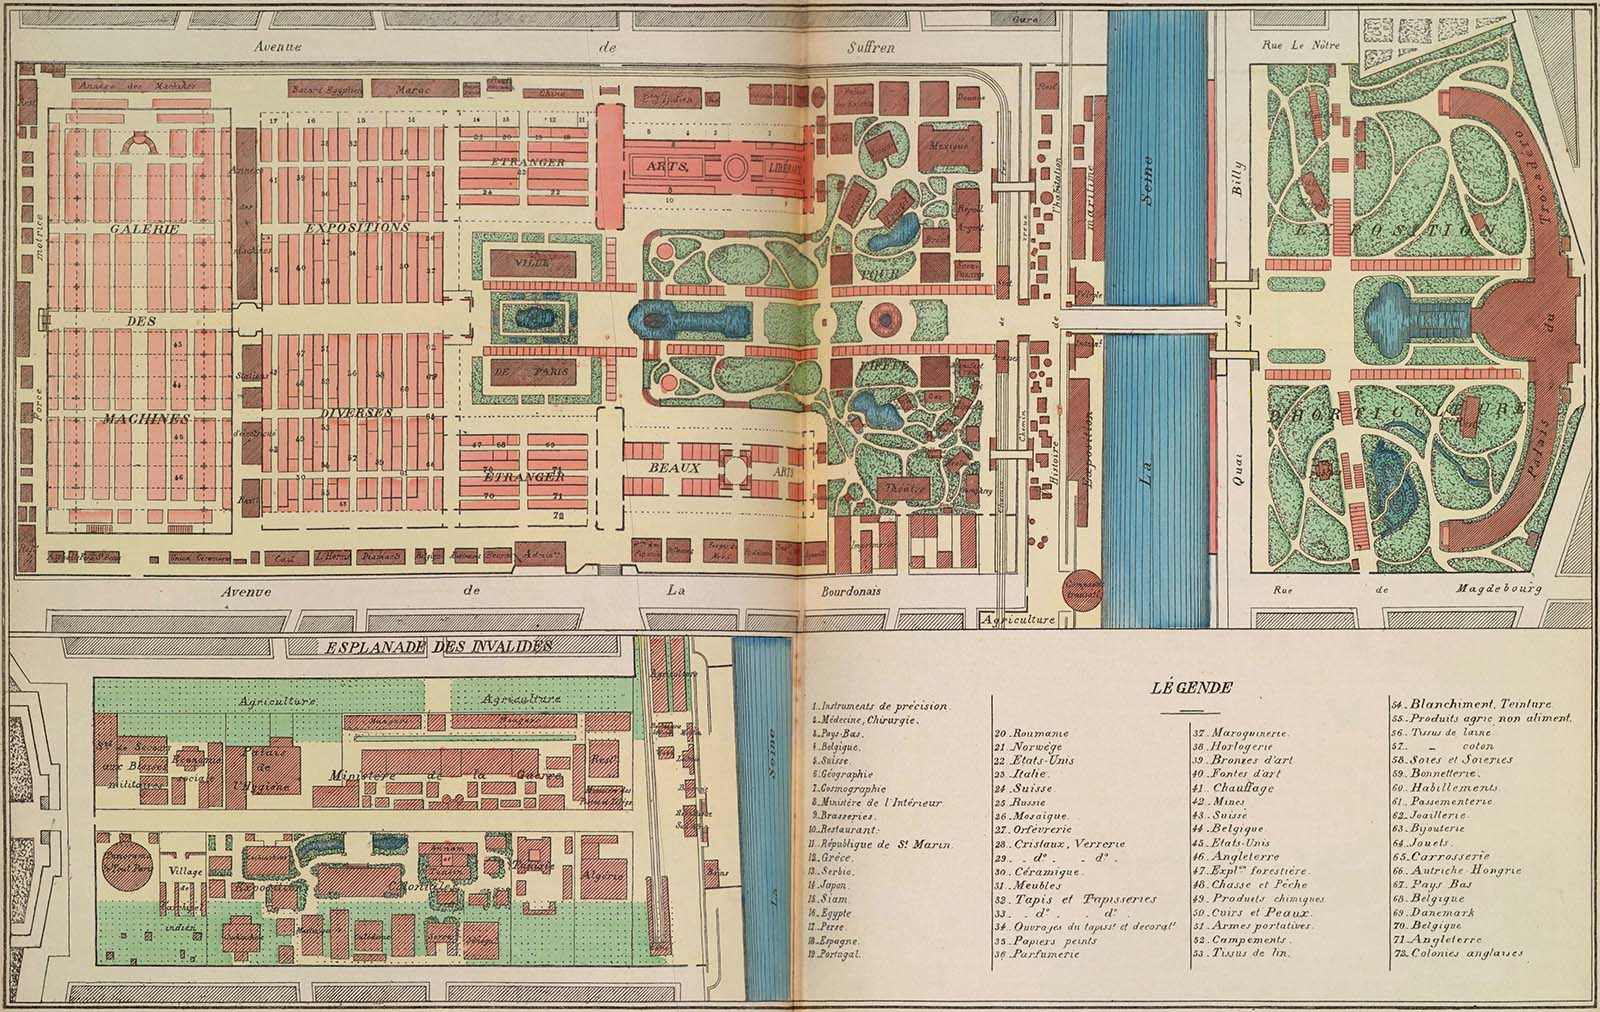 Map of the 1889 World Fair. The top image represents the Champ-de-Mars, from the Trocadéro Palace to the Galerie des machines (next to the École Militaire, which still exists today). The bottom print represents the Esplanade des Invalides, about half a mile from the Champ-de-Mars. This second site of the World Fair housed the Exposition coloniale as well as an agricultural fair.